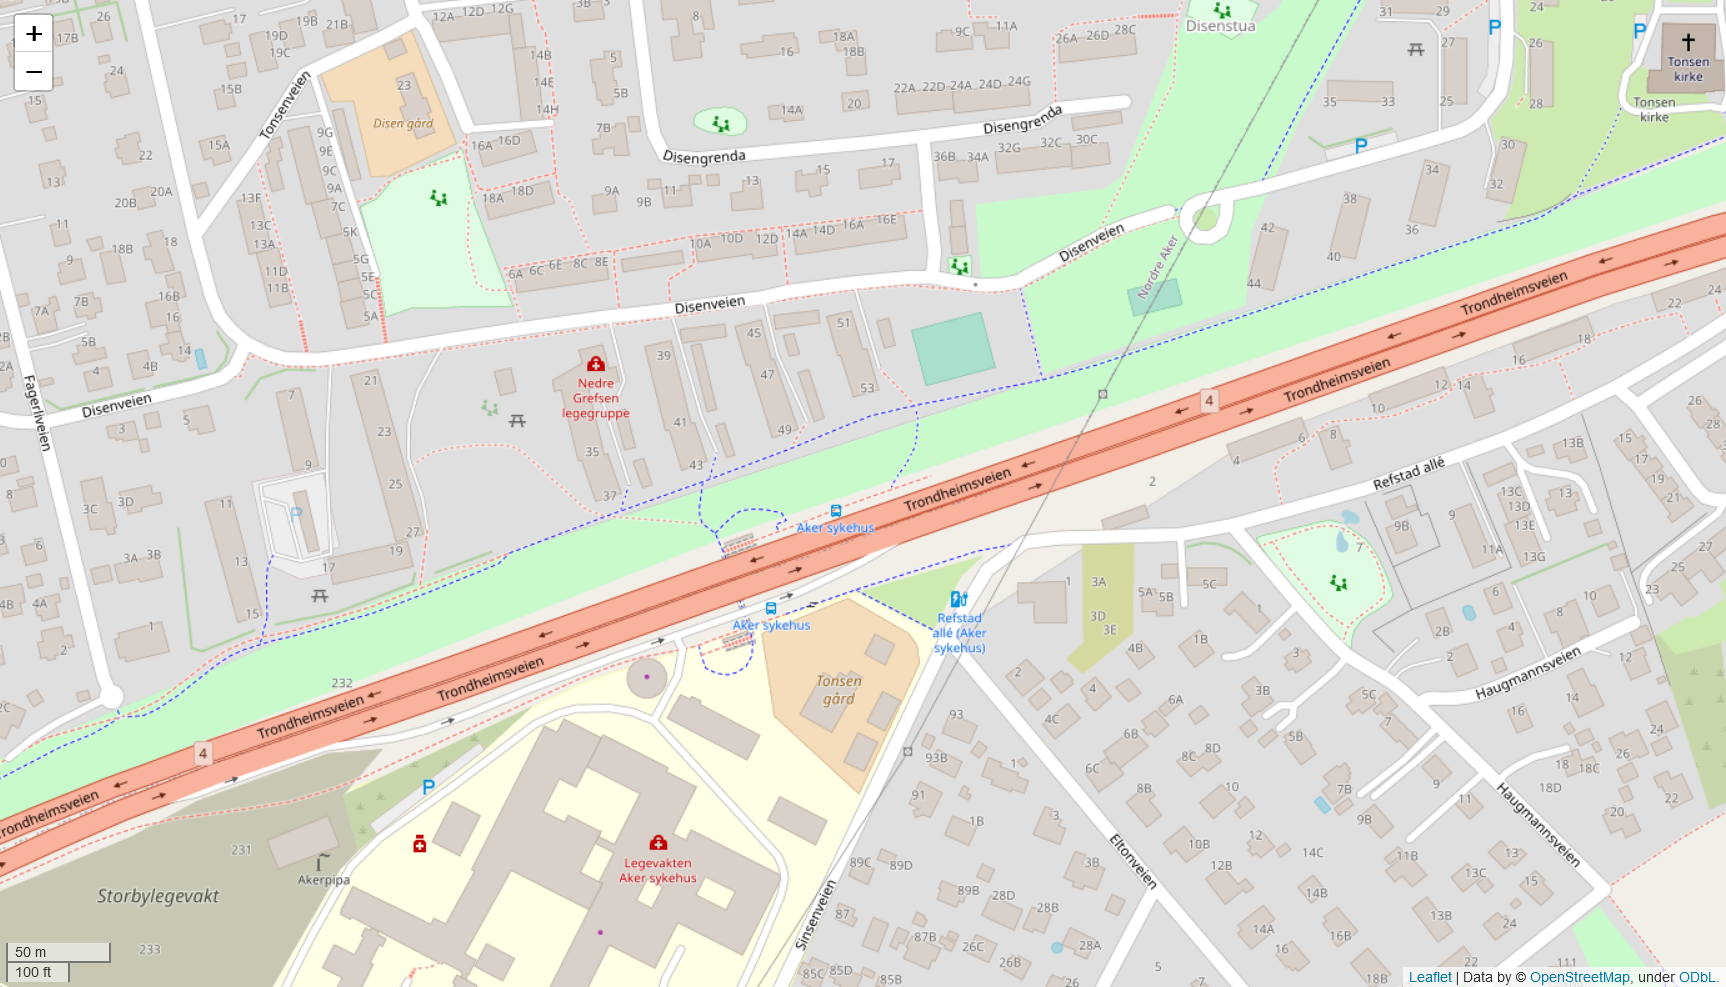 lur_oslo_no2_stats/osm/163_zoom_17.png